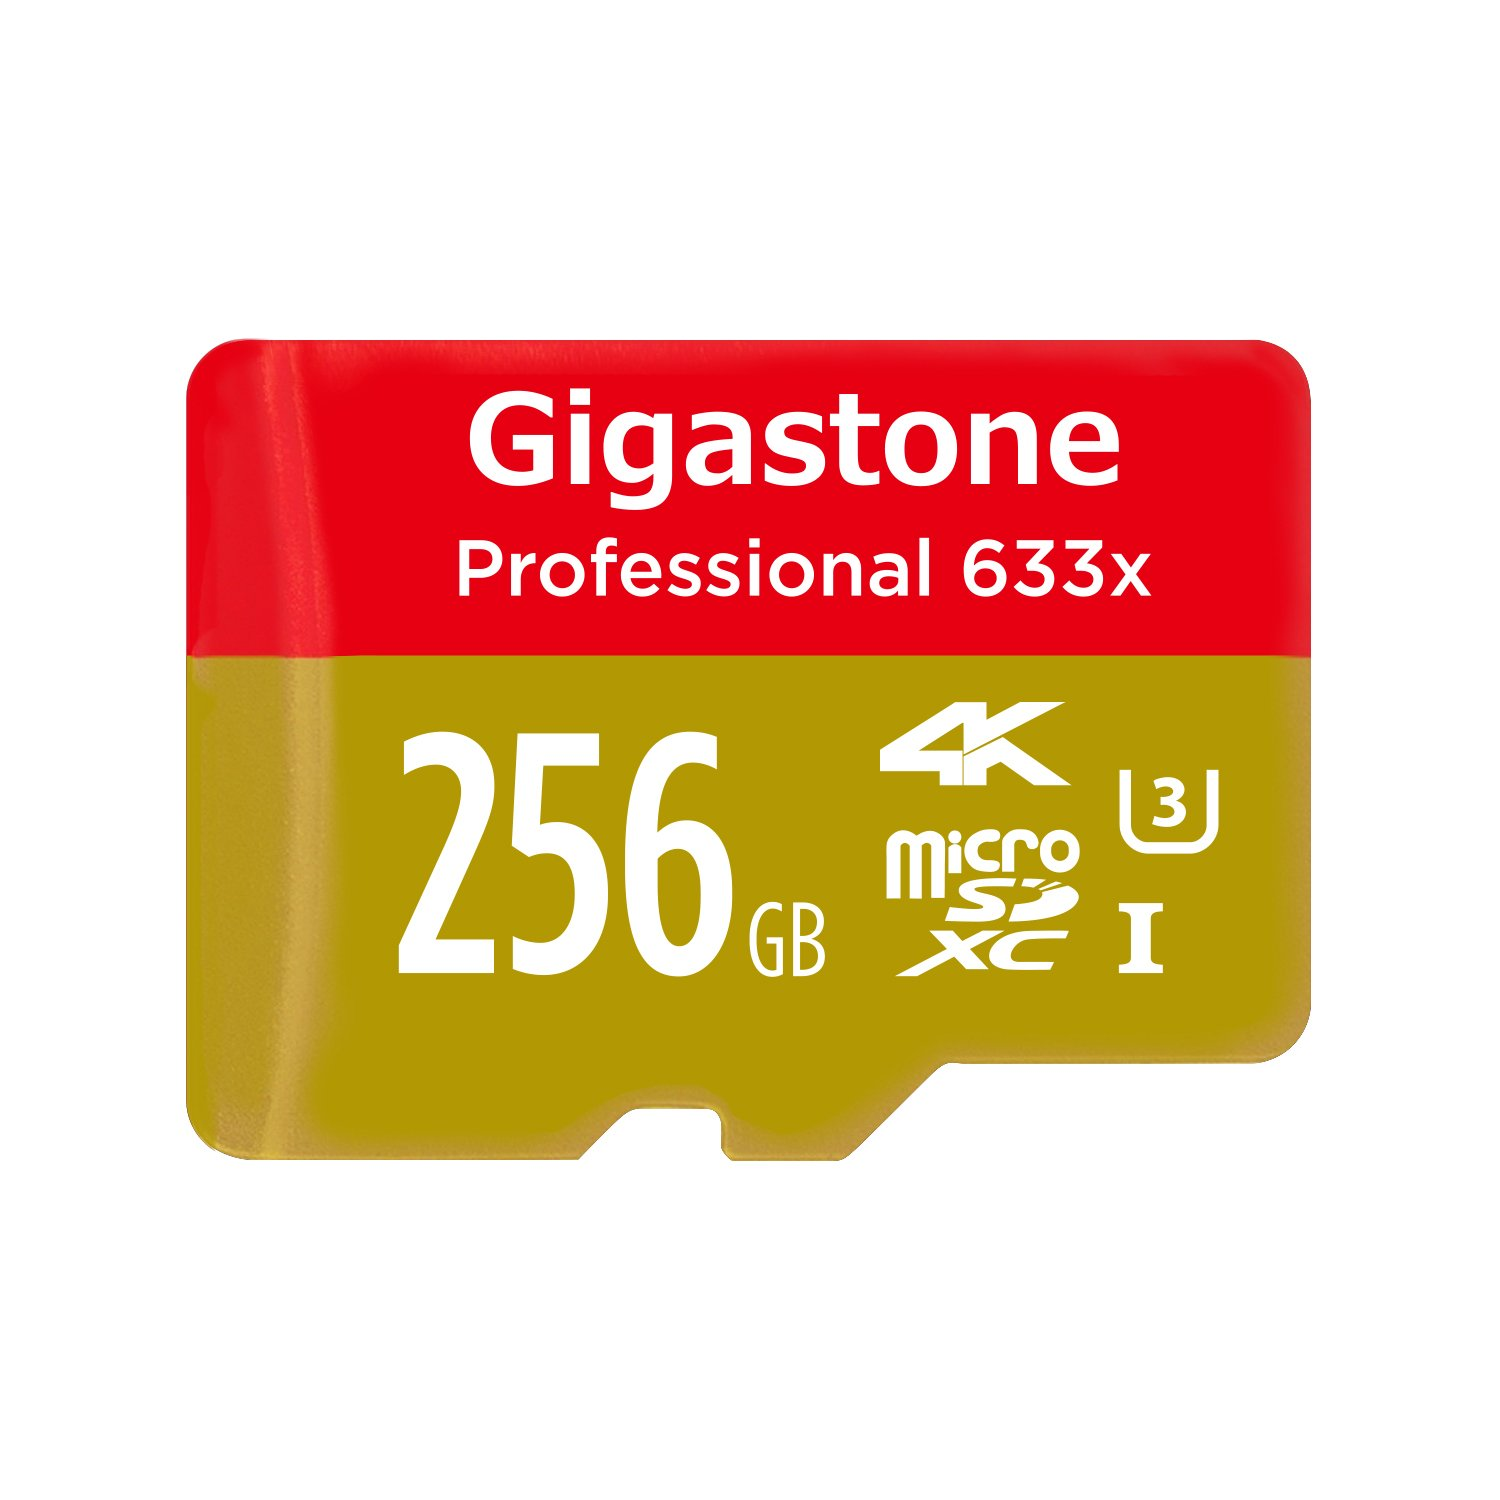 Gigastone 256GB Micro SD Card Professional 4K Ultra HD, Micro SDXC U3 C10 Class 10 Uhs Memory Card High Speed Up to 95MB/S with MicroSD SD Adapter, Camera Canon Dashcam DJI Drone Gopro Nikon Nintendo